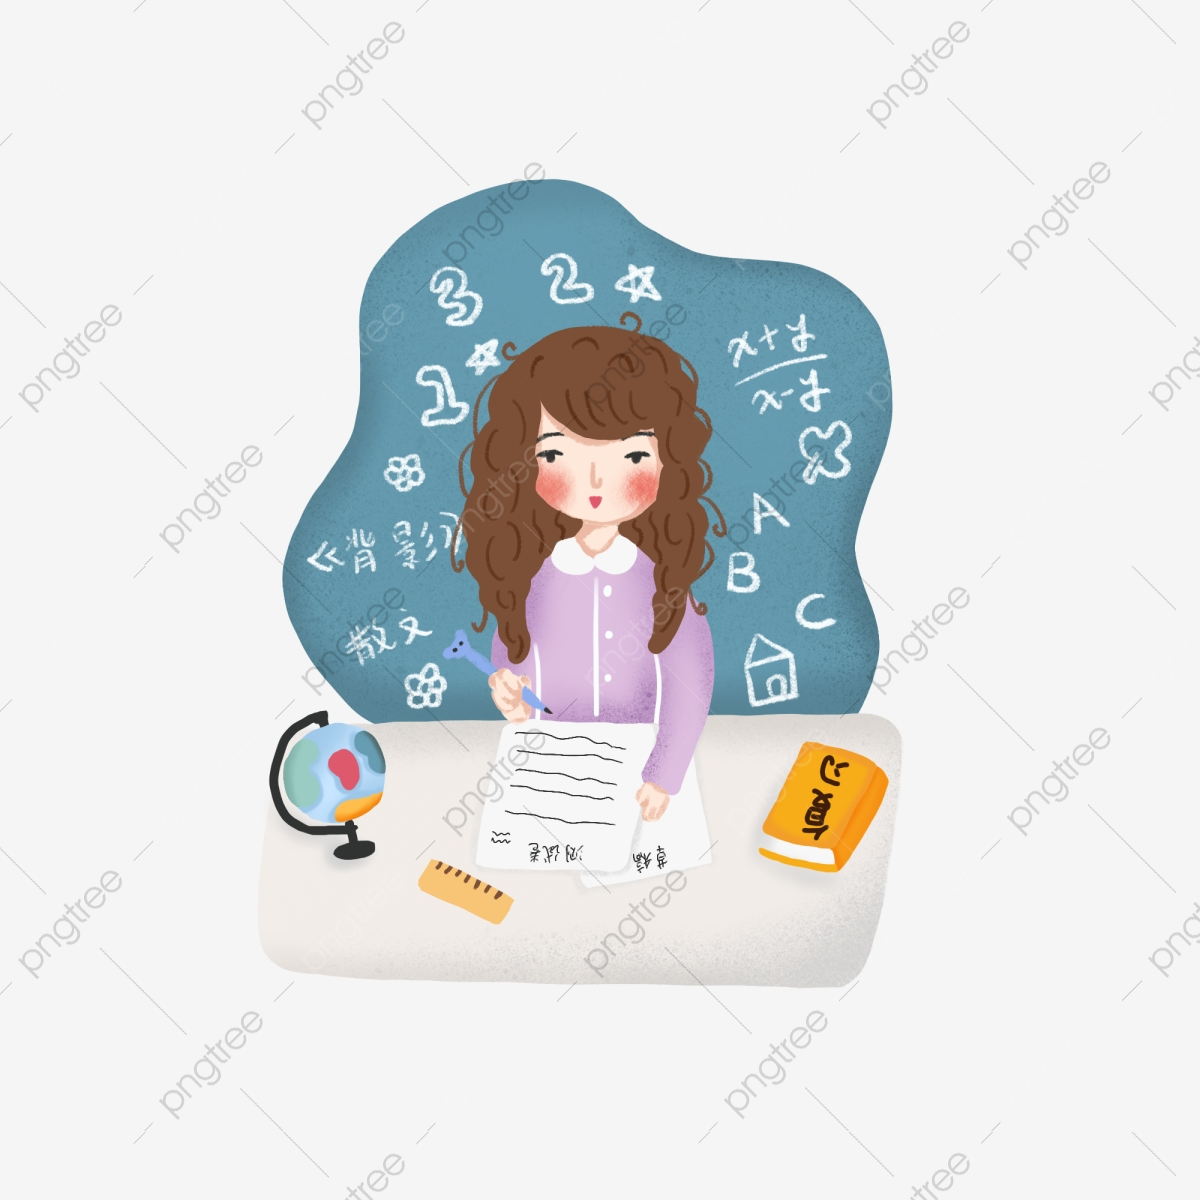 Student Student Clipart Cartoon Characters Png Transparent Image